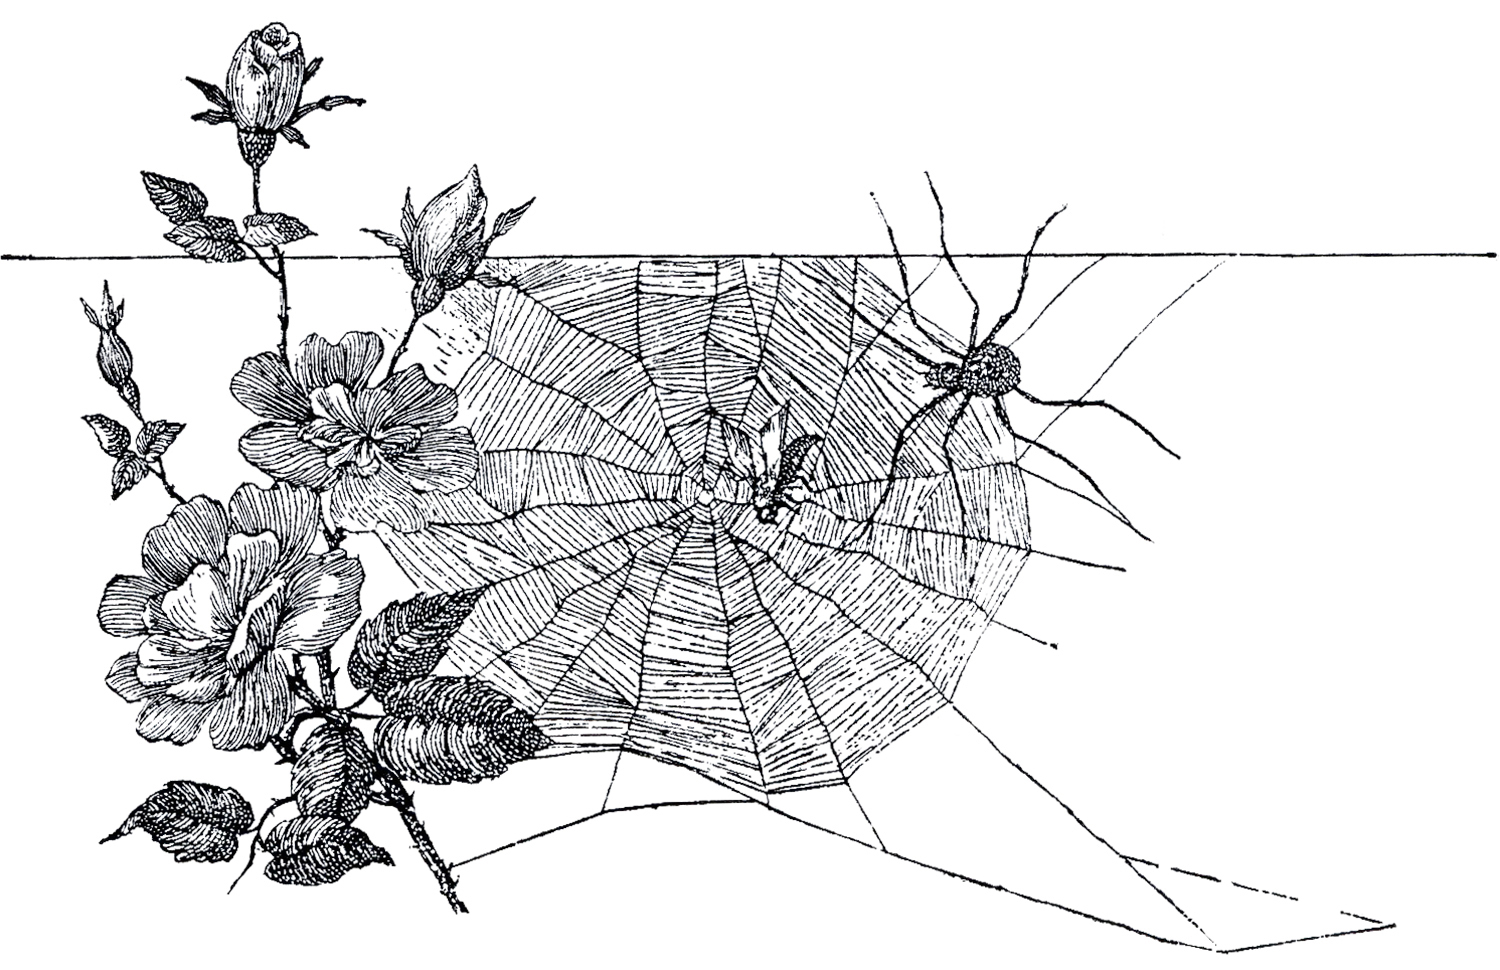 Free Spider Web Image - The Graphics Fairy